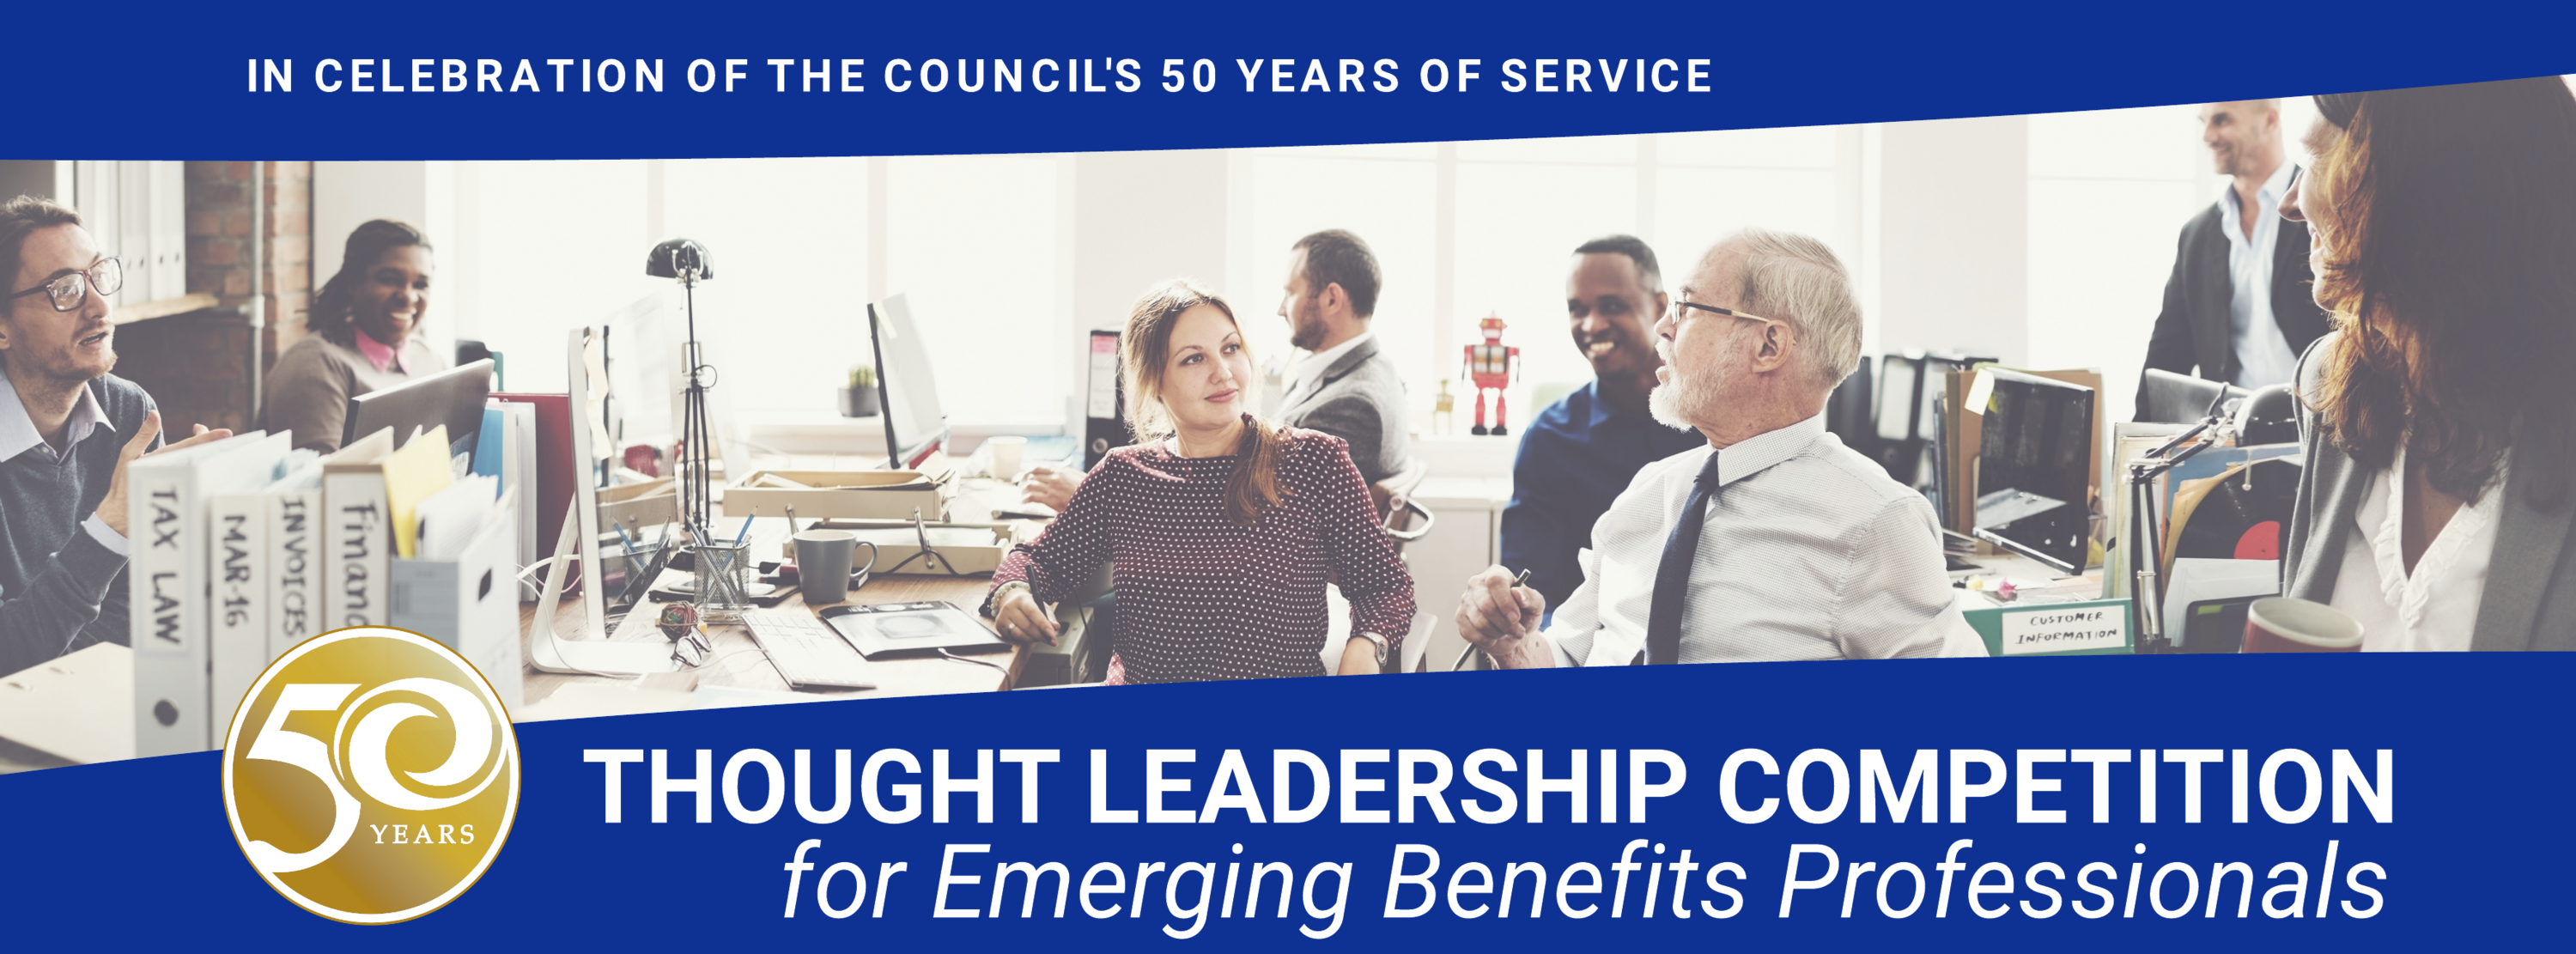 Thought Leadership Competition For Emerging Benefits Professionals American Benefits Council